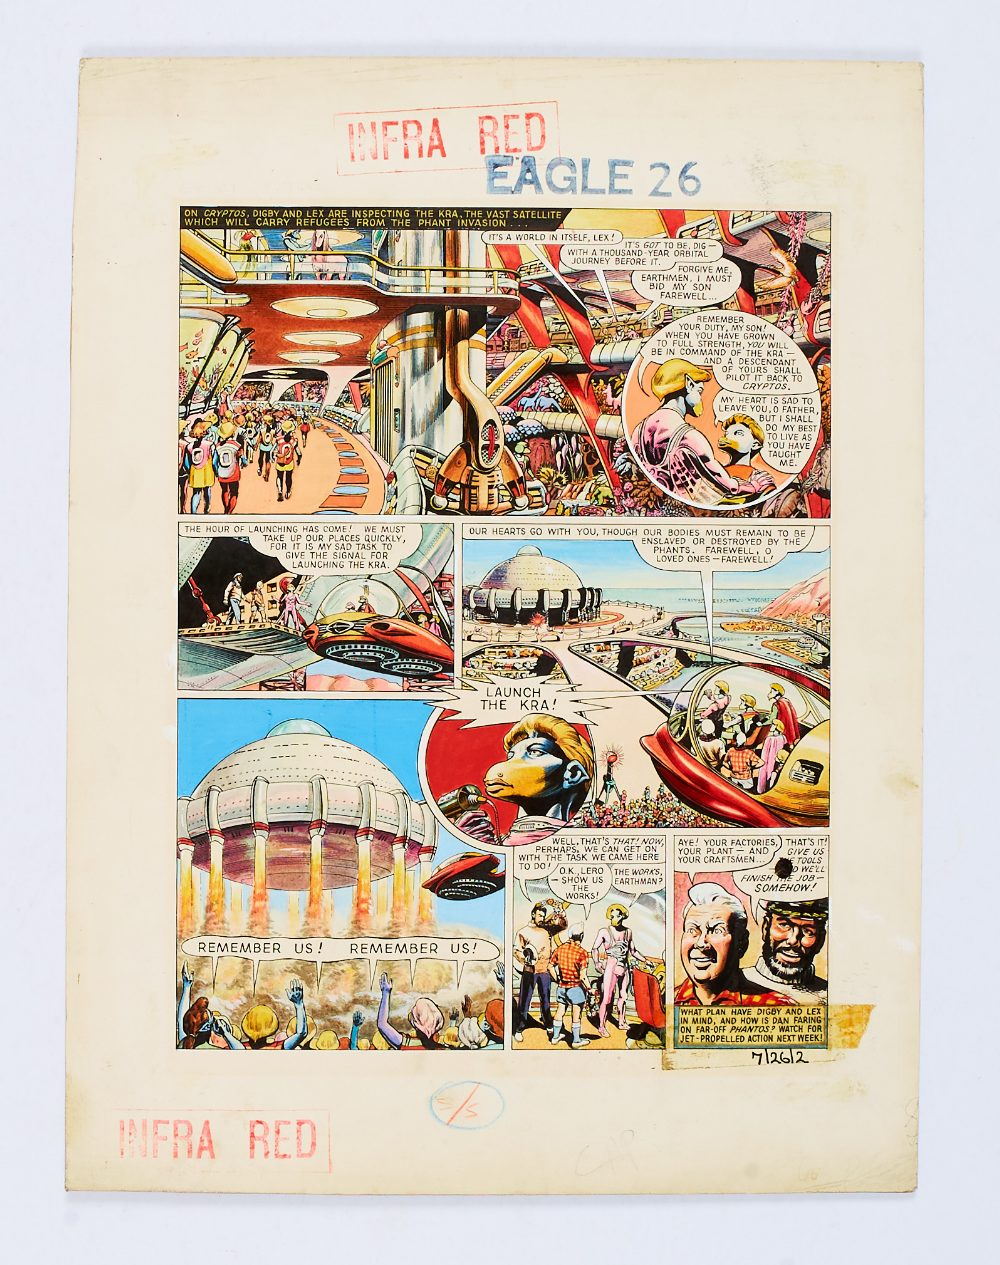 Lot 70 - Dan Dare original artwork (1956) drawn and painted by Frank Hampson for The Eagle Volume 7 No 26.